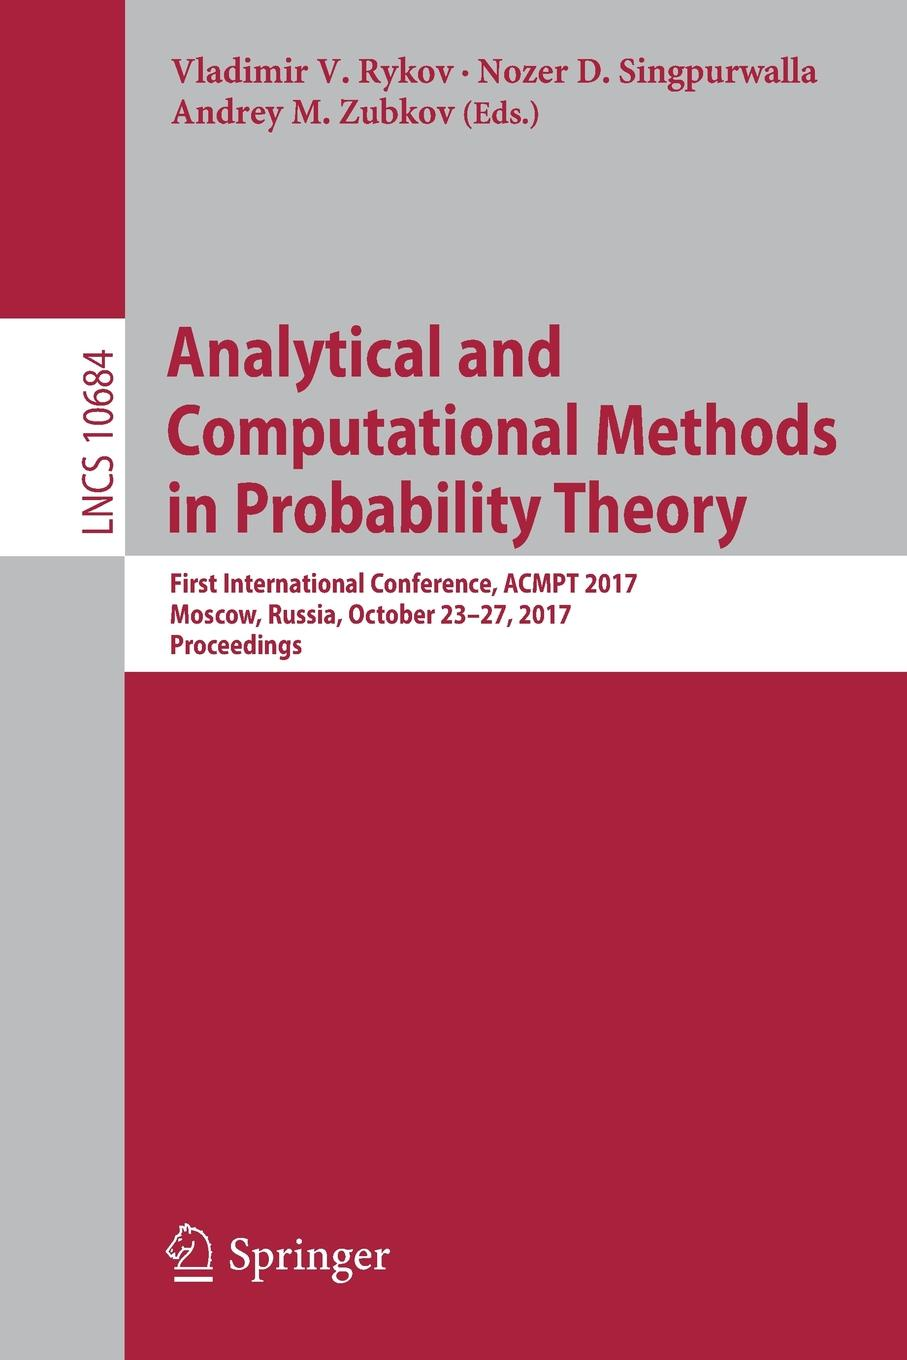 Analytical and Computational Methods in Probability Theory. First International Conference, ACMPT 2017, Moscow, Russia, October 23-27, 2017, Proceedings цены онлайн